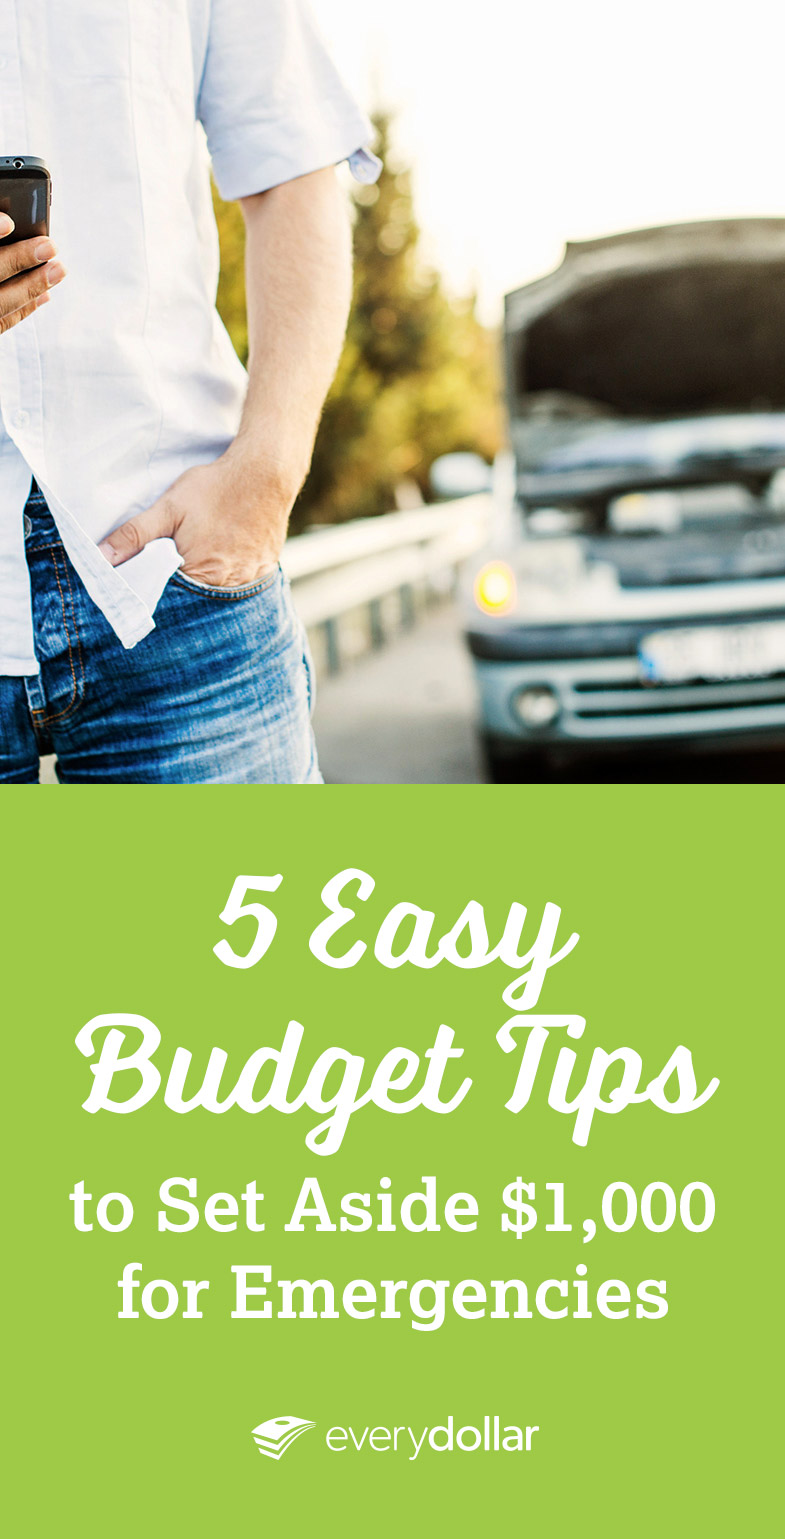 5 Easy Budget Tips to Set Aside